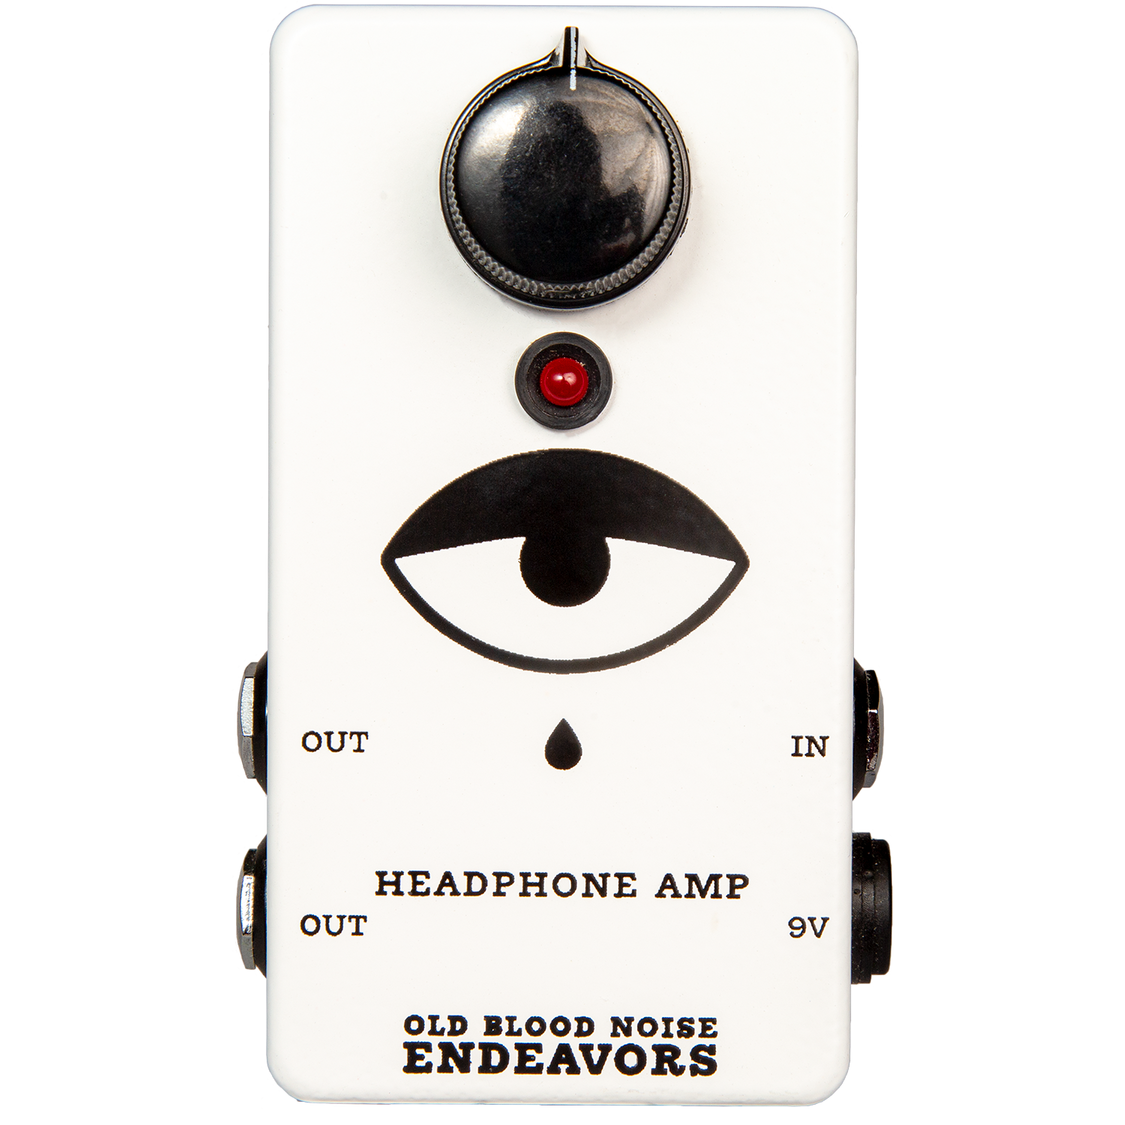 Old Blood Noise Endeavors - Headphone Amp